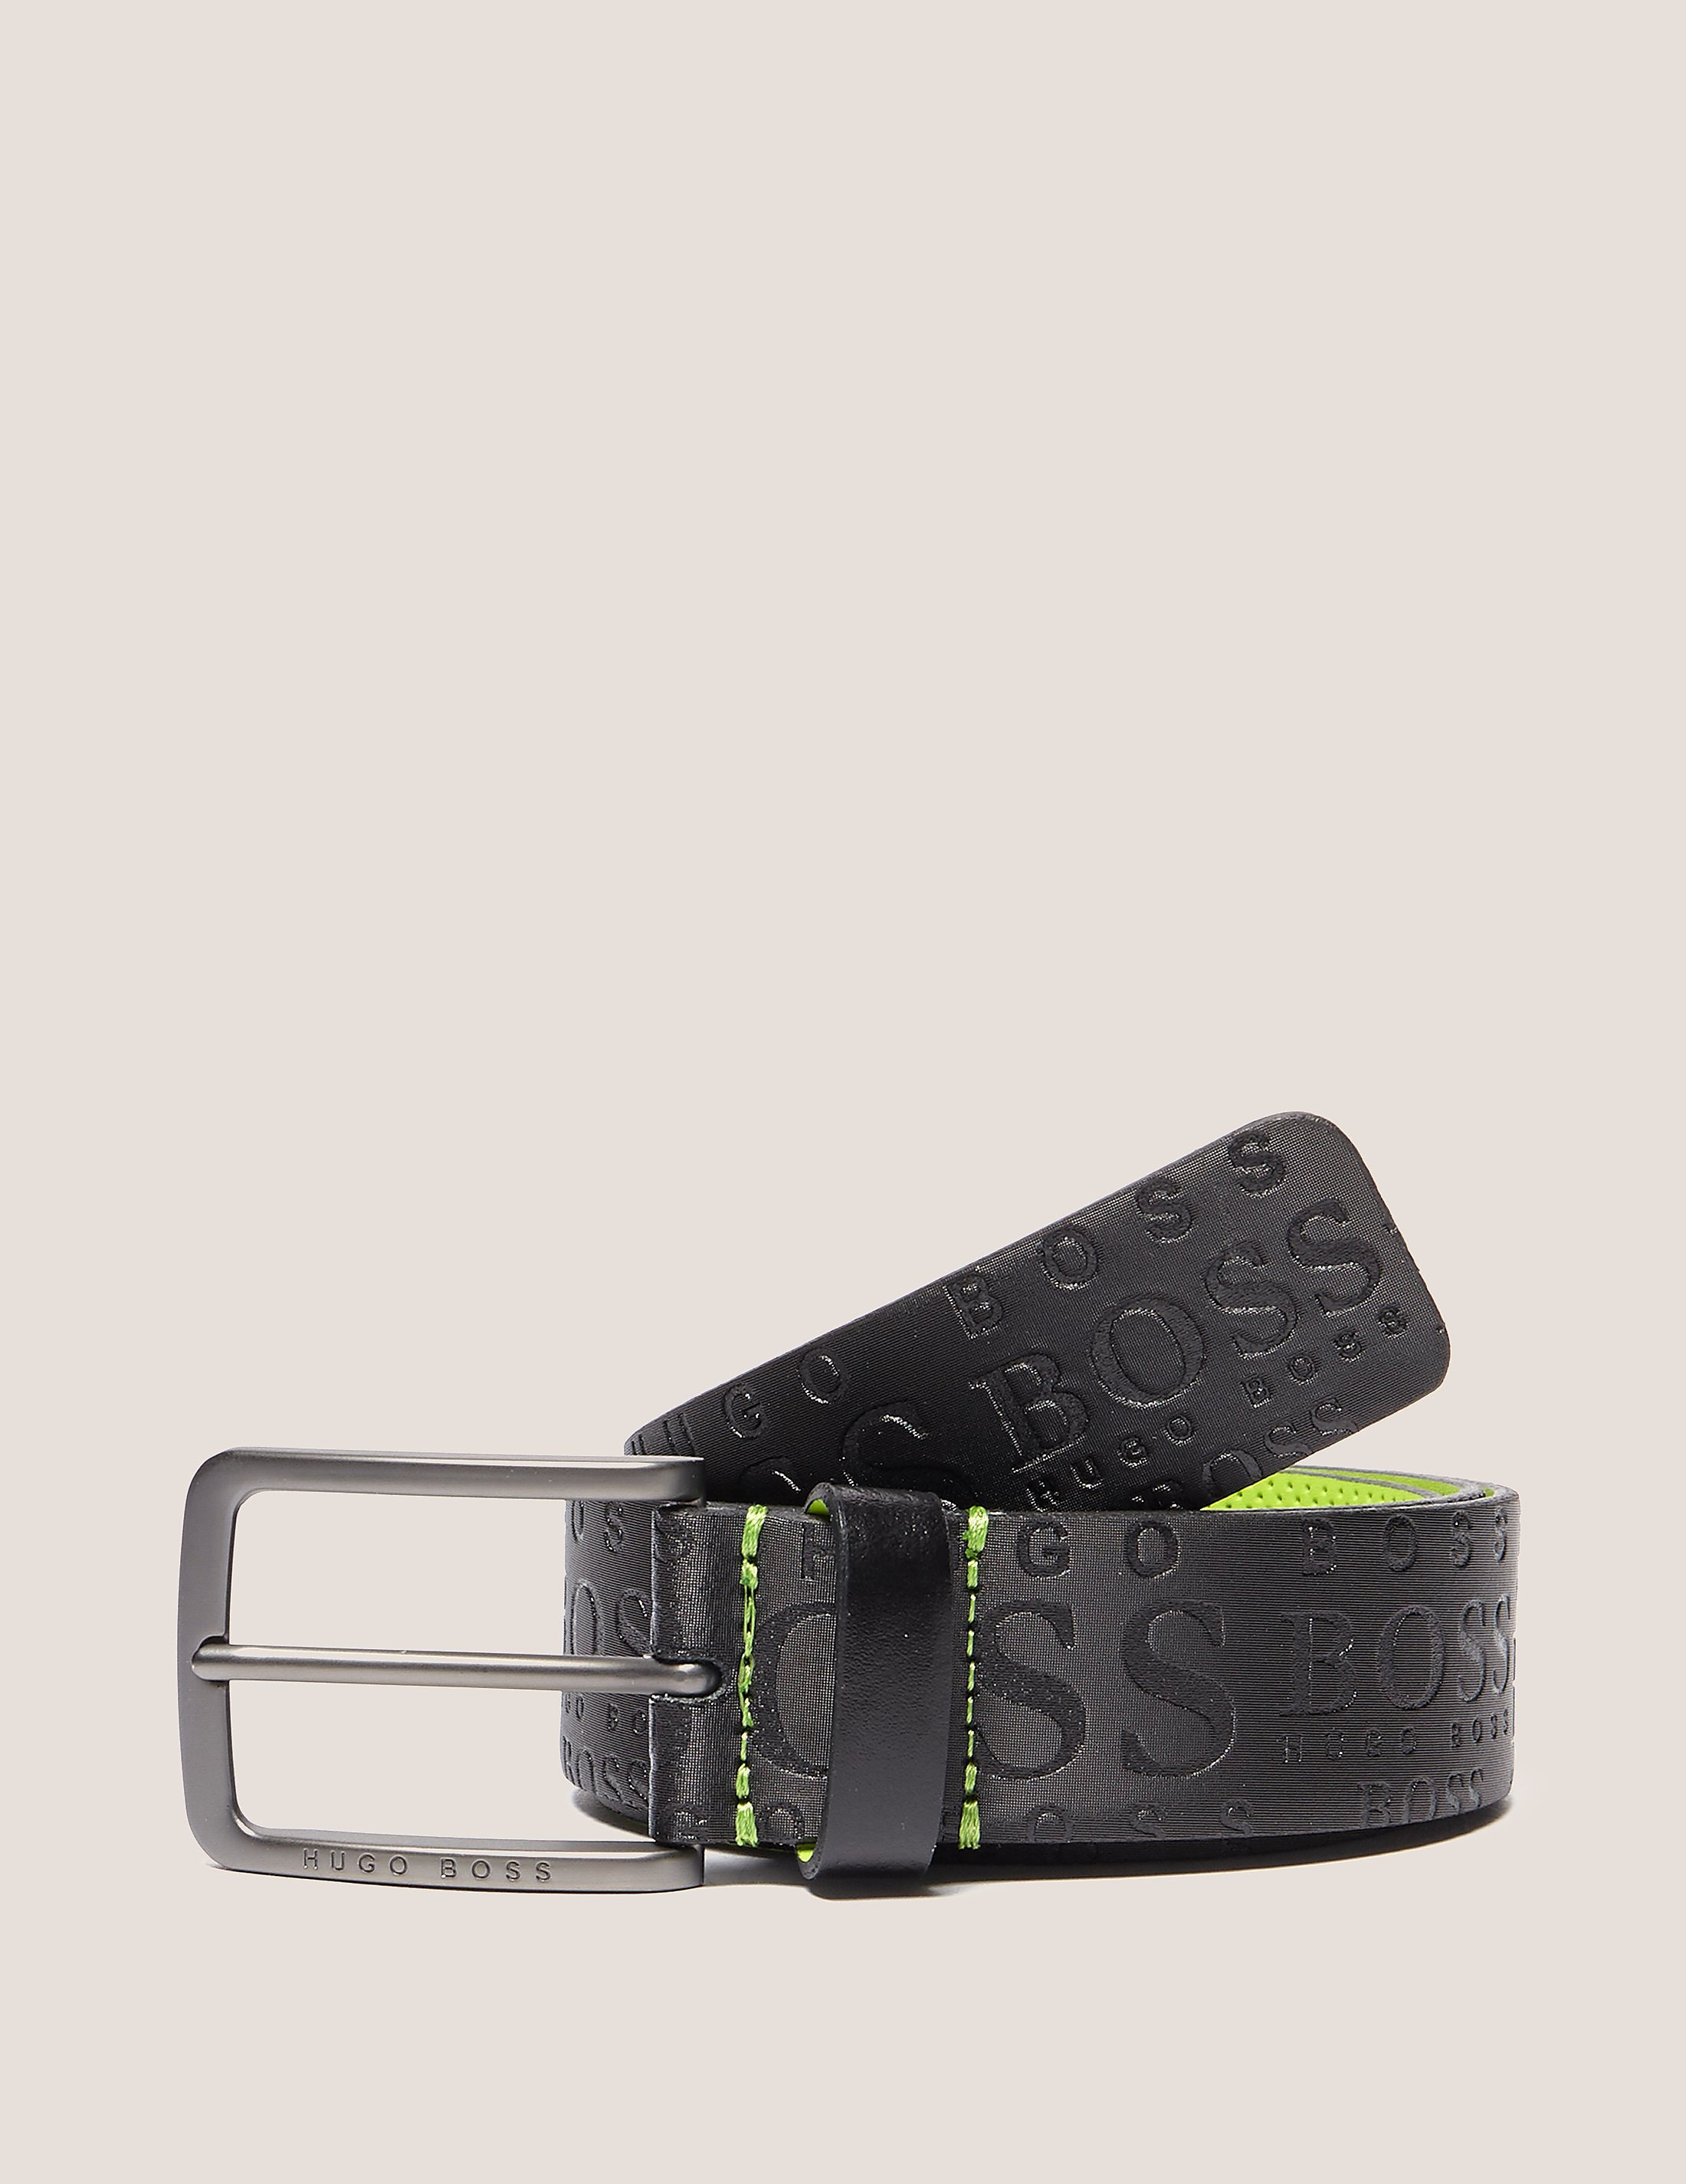 BOSS Green Embossed Leather Belt